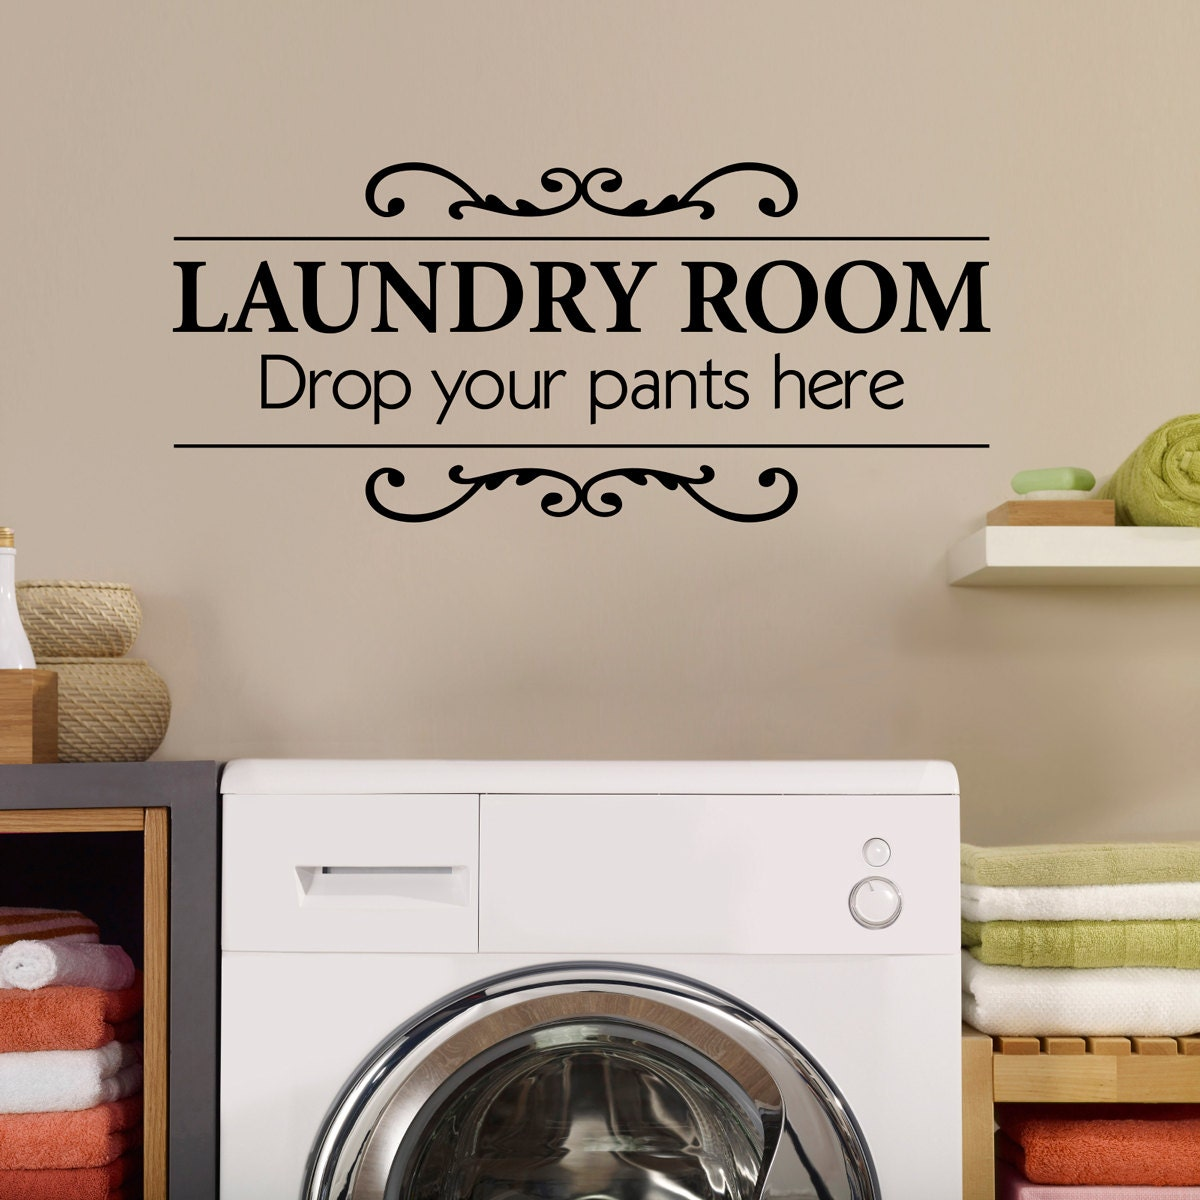 laundry room wall decal drop your pants here utility room the laundry room removable wall sticker temple amp webster